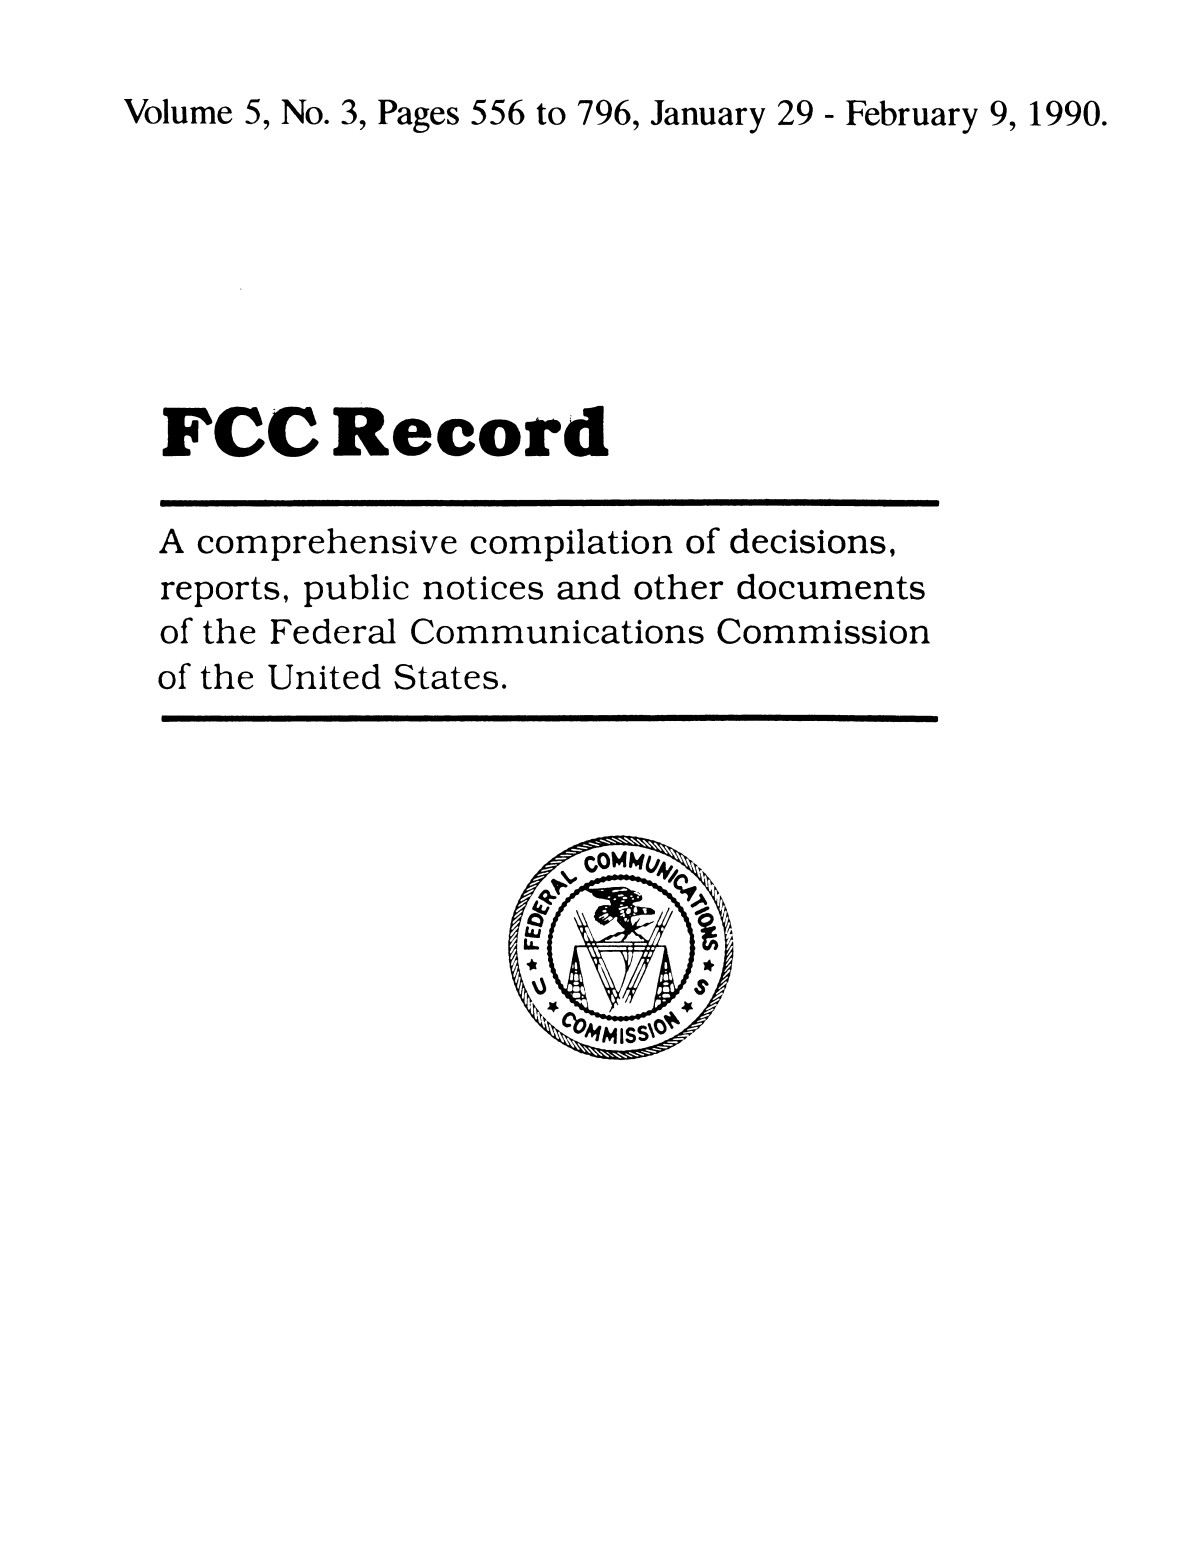 FCC Record, Volume 5, No. 3, Pages 556 to 796, January 29 - February 9, 1990                                                                                                      Front Cover